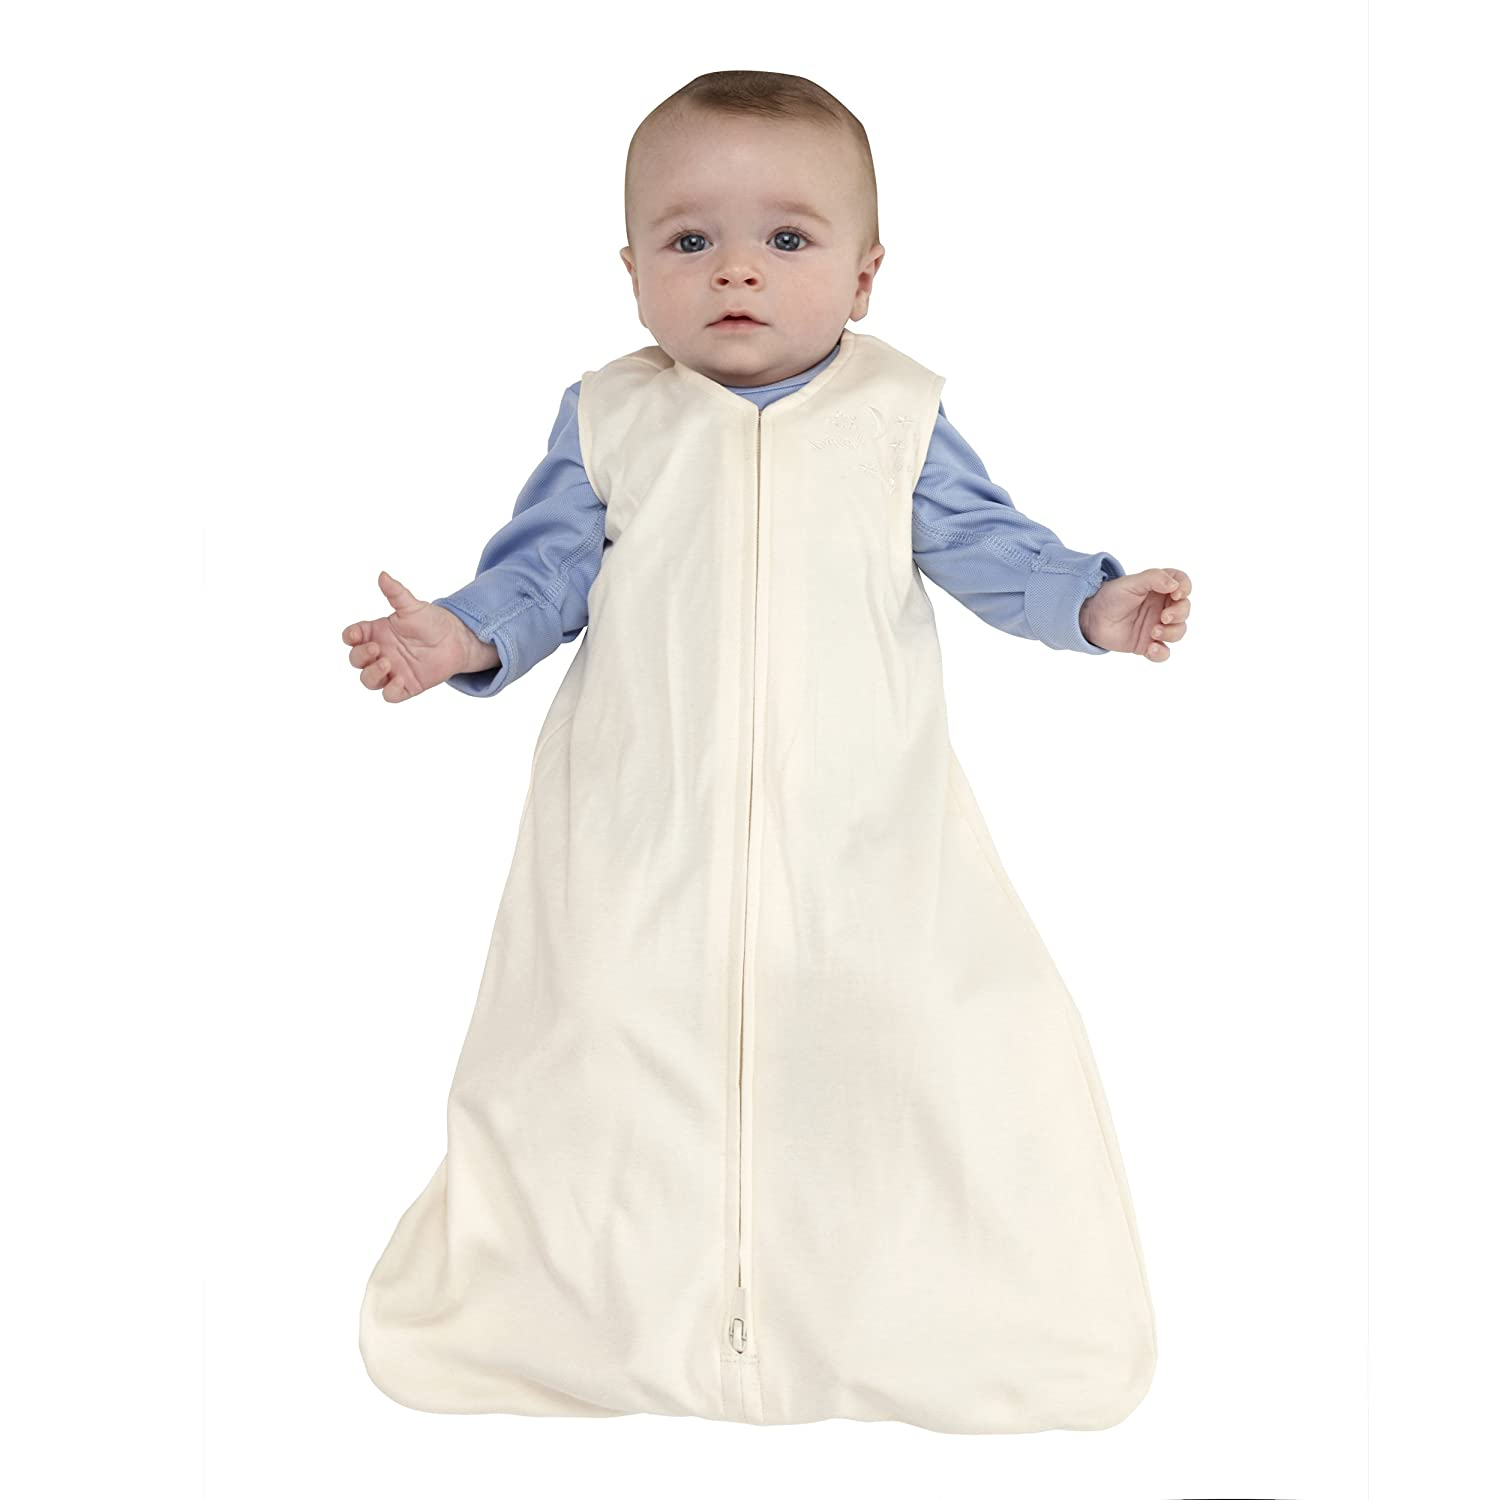 HALO SleepSack 100% Cotton Wearable Blanket, Cream, Large: Amazon.es: Bebé